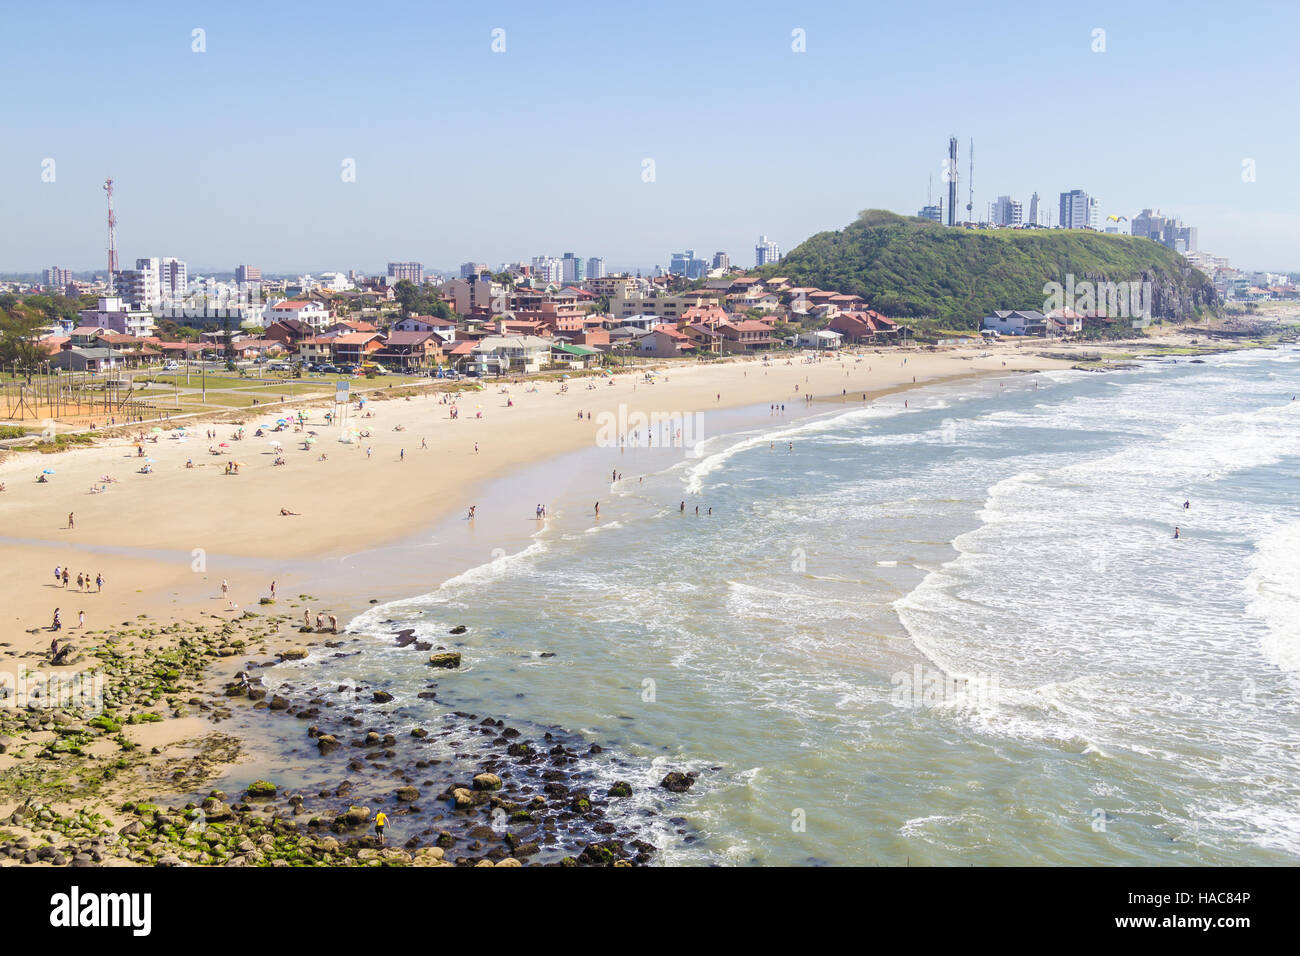 Sunny day with waves and blue sky at Cal beach, Torres, Rio Grande do Sul. - Stock Image